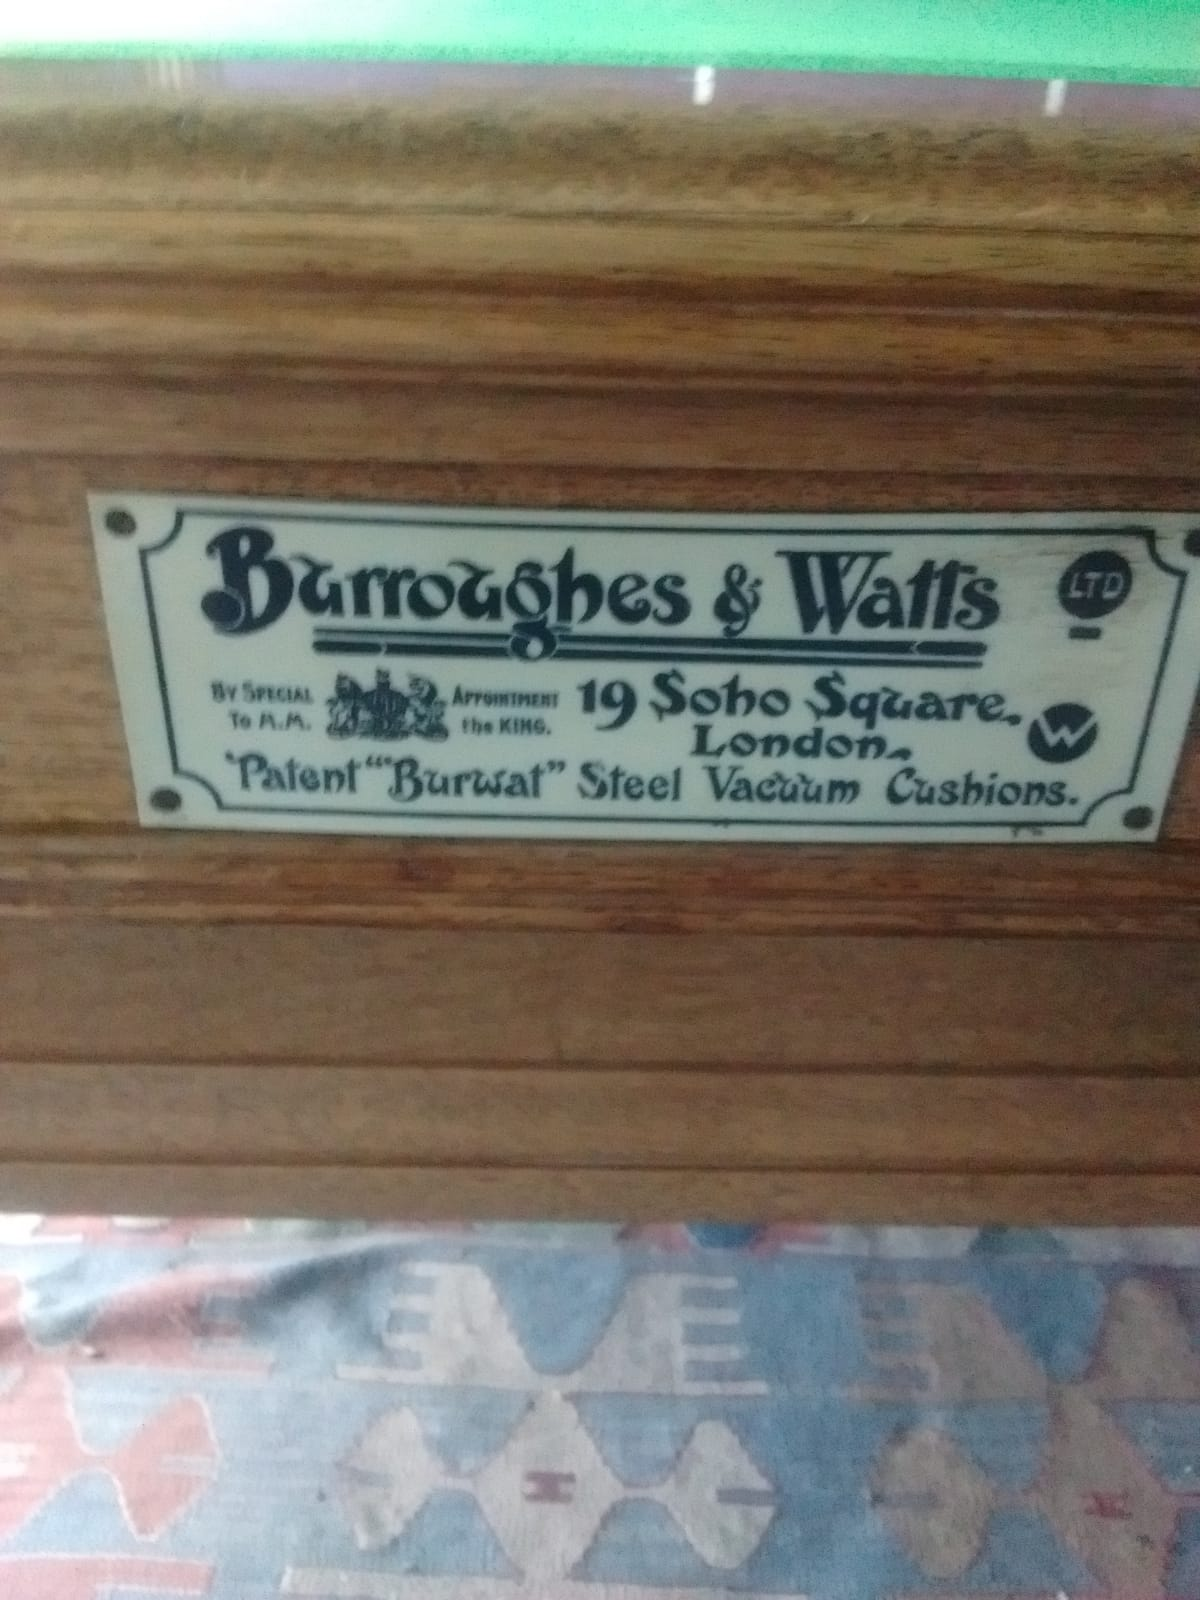 Burroughs-and-Watts-4